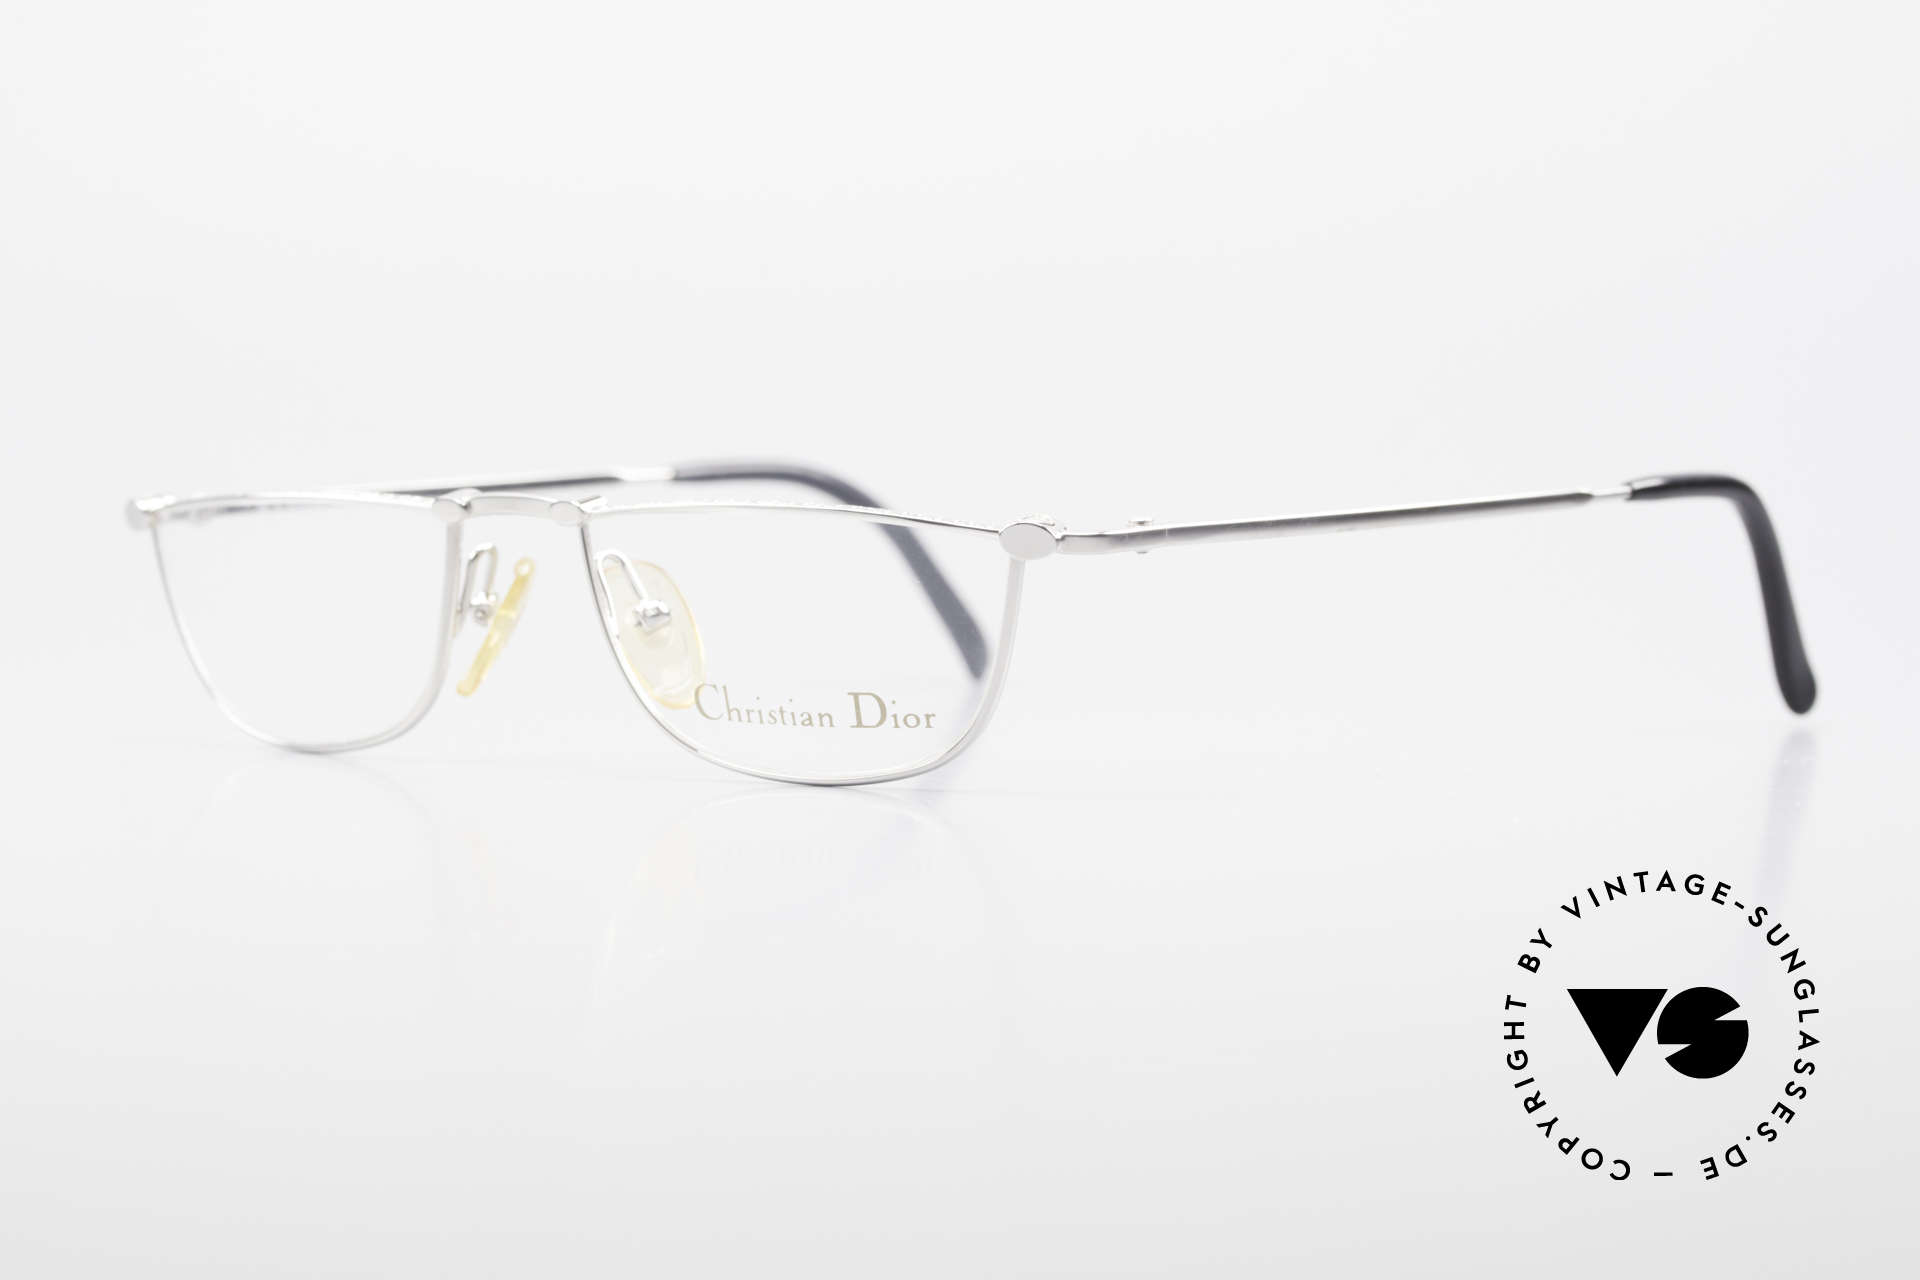 Christian Dior 2943 Designer Reading Glasses 90's, utterly top-quality - U've got to feel this! - vintage!, Made for Men and Women